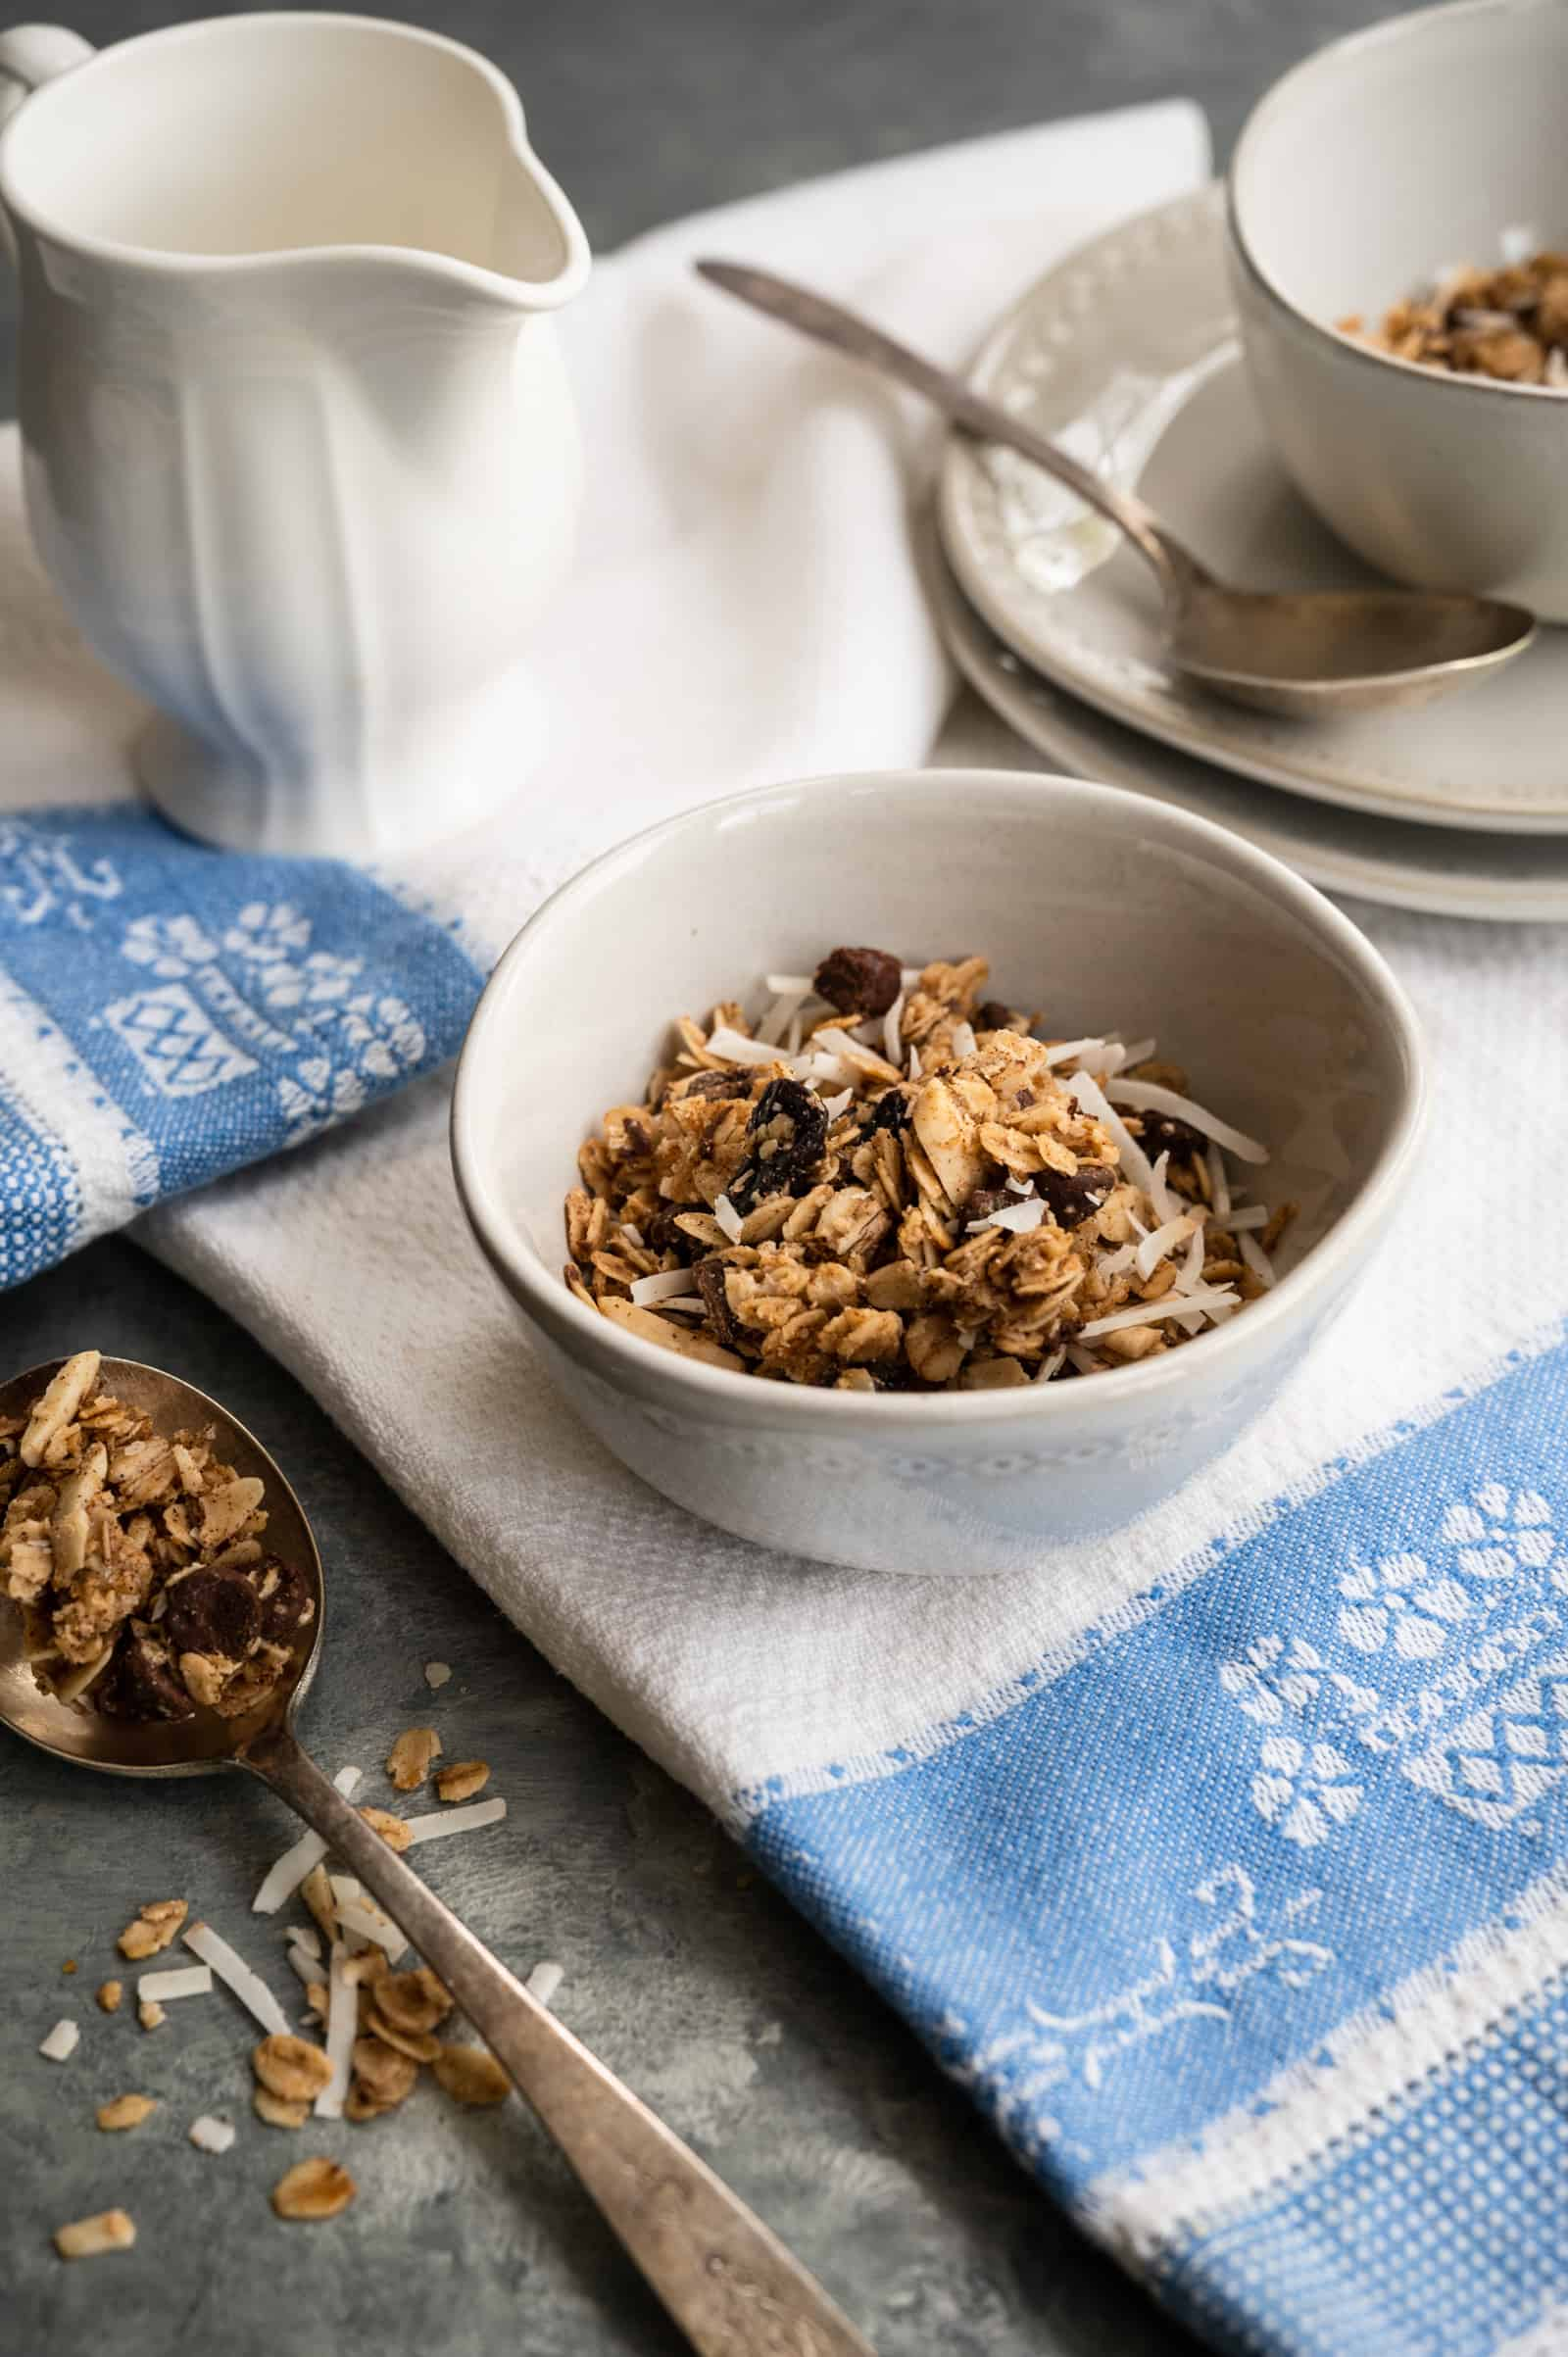 bowls of granola with a spoon on a gray background and blue and white dish towel